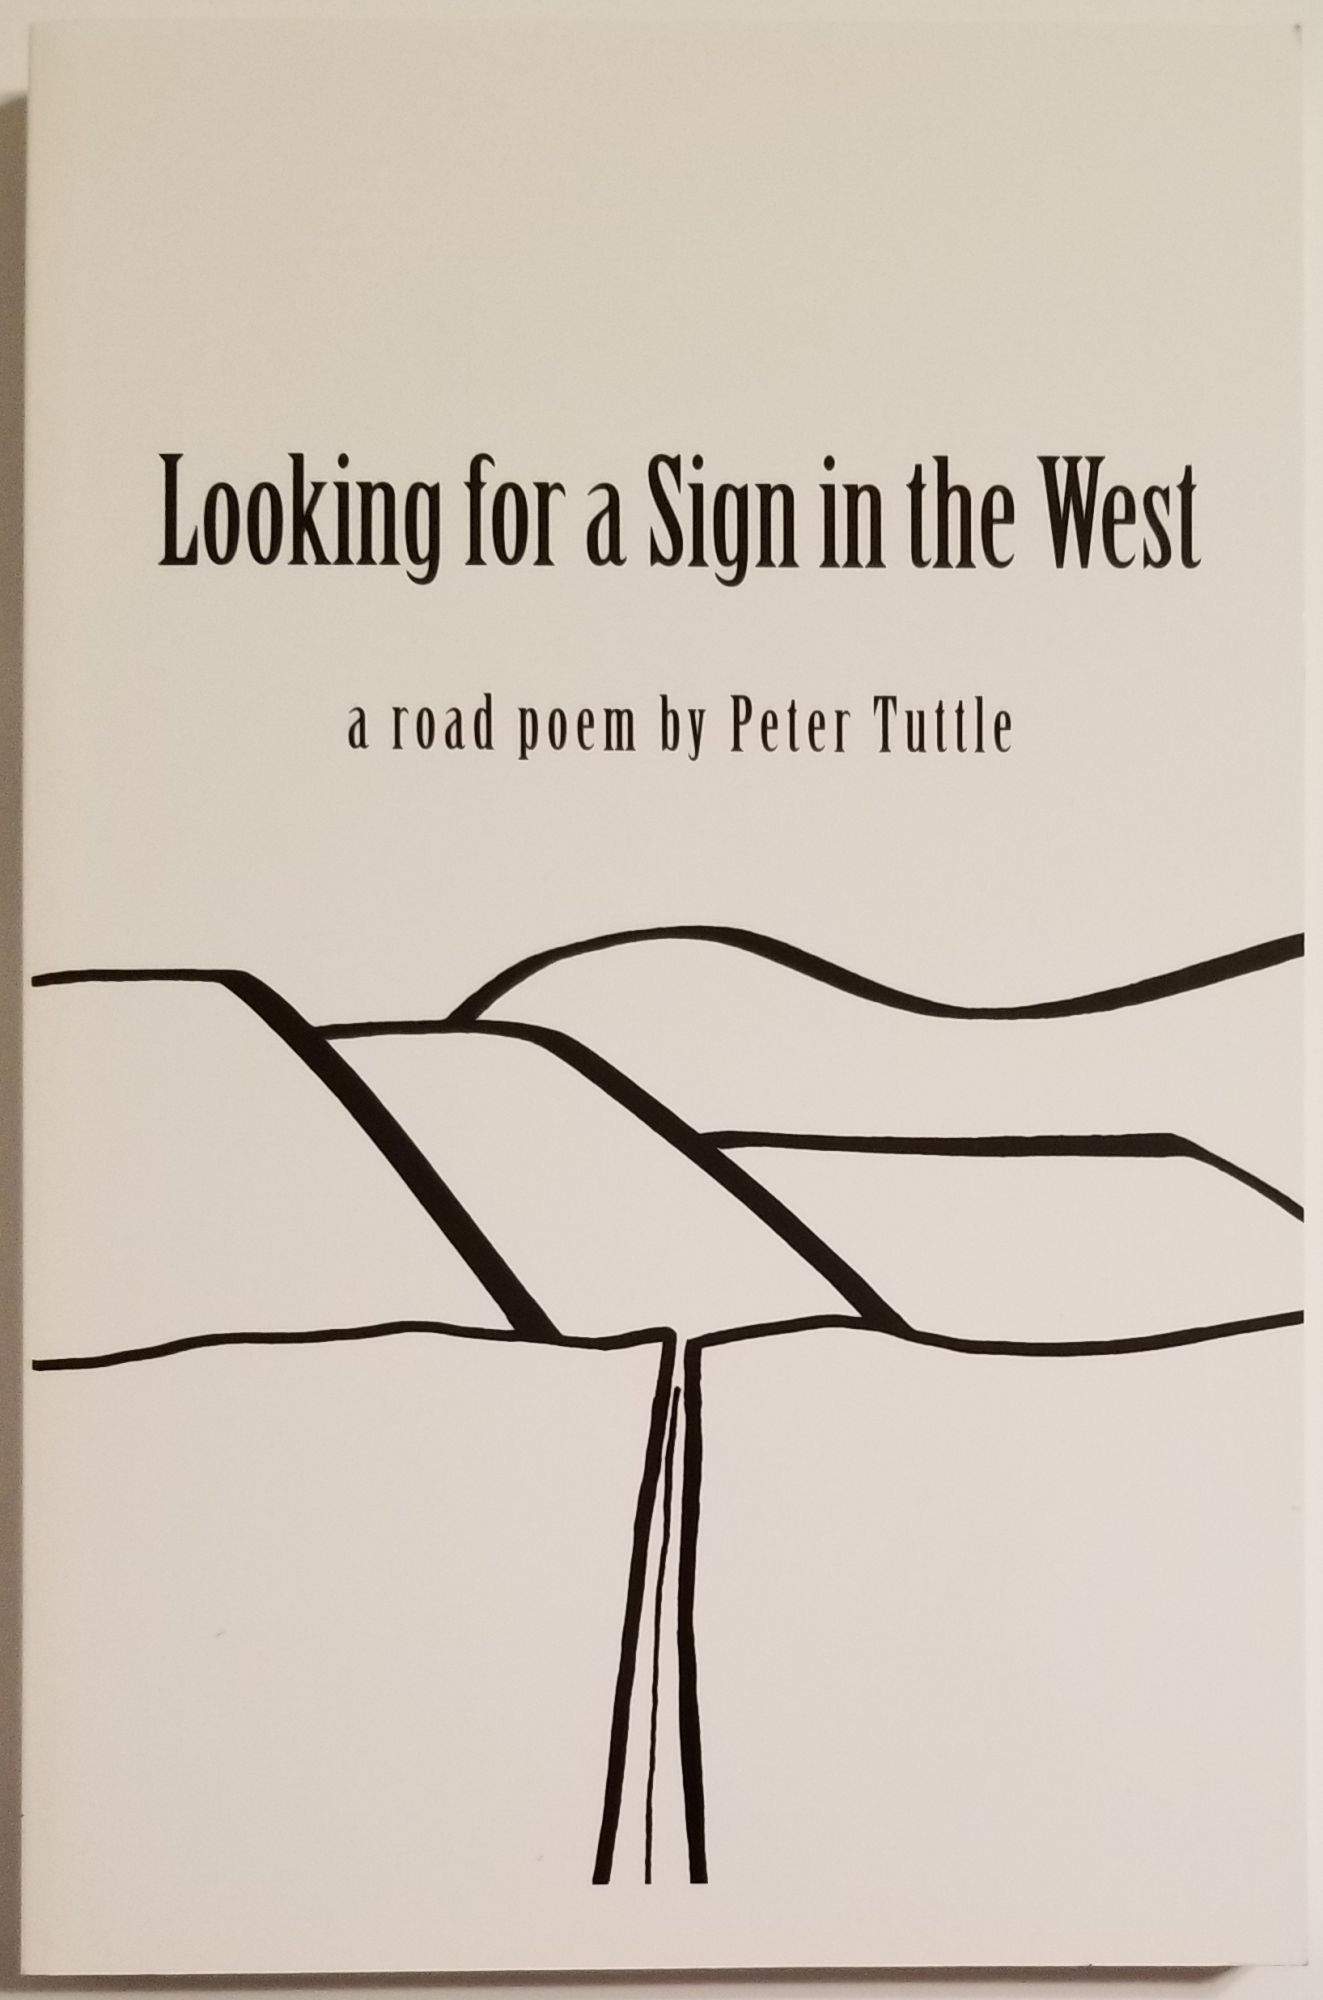 LOOKING FOR A SIGN IN THE WEST. Peter Tuttle.